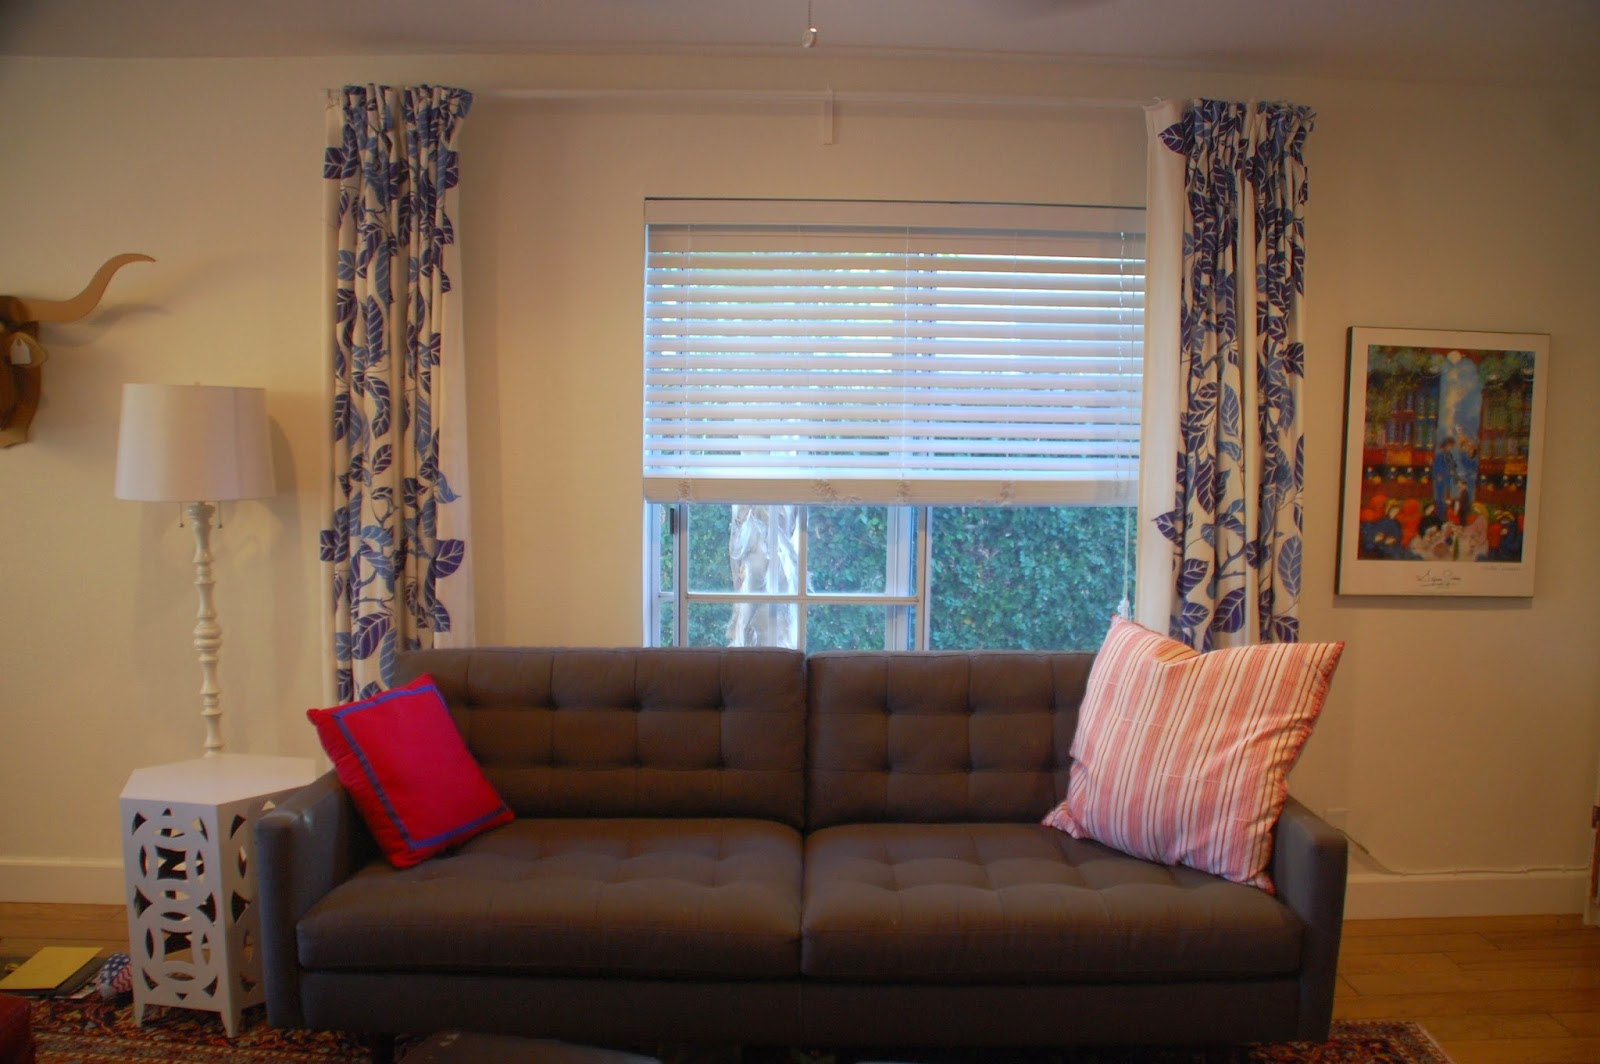 Lately I Have Been Debating Doing Away With The Curtains Completely Sofa Always Ends Up Pushed Against Wall Trapping Behind It